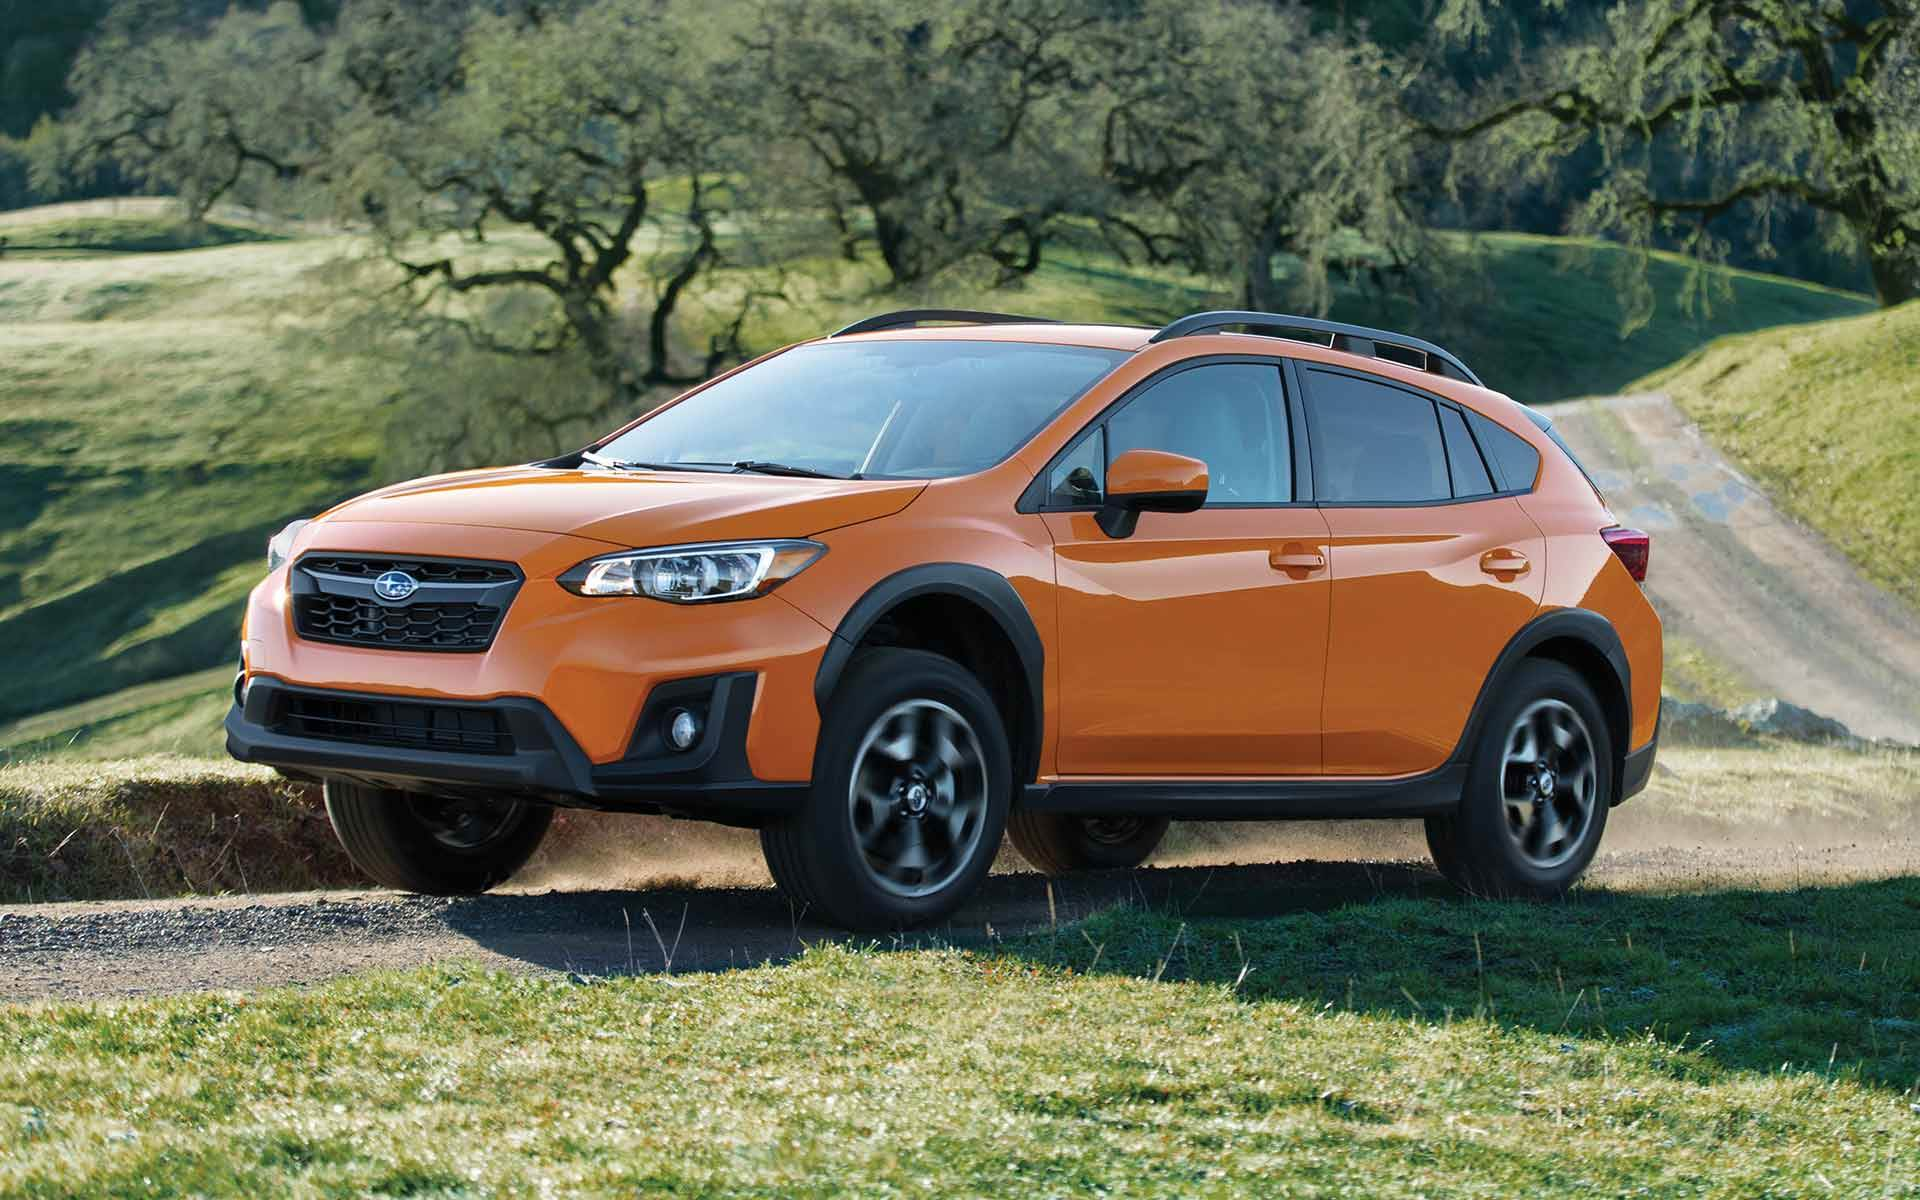 2019 Subaru Crosstrek Offers Intuitive Safety Features for Your Bay City Drive